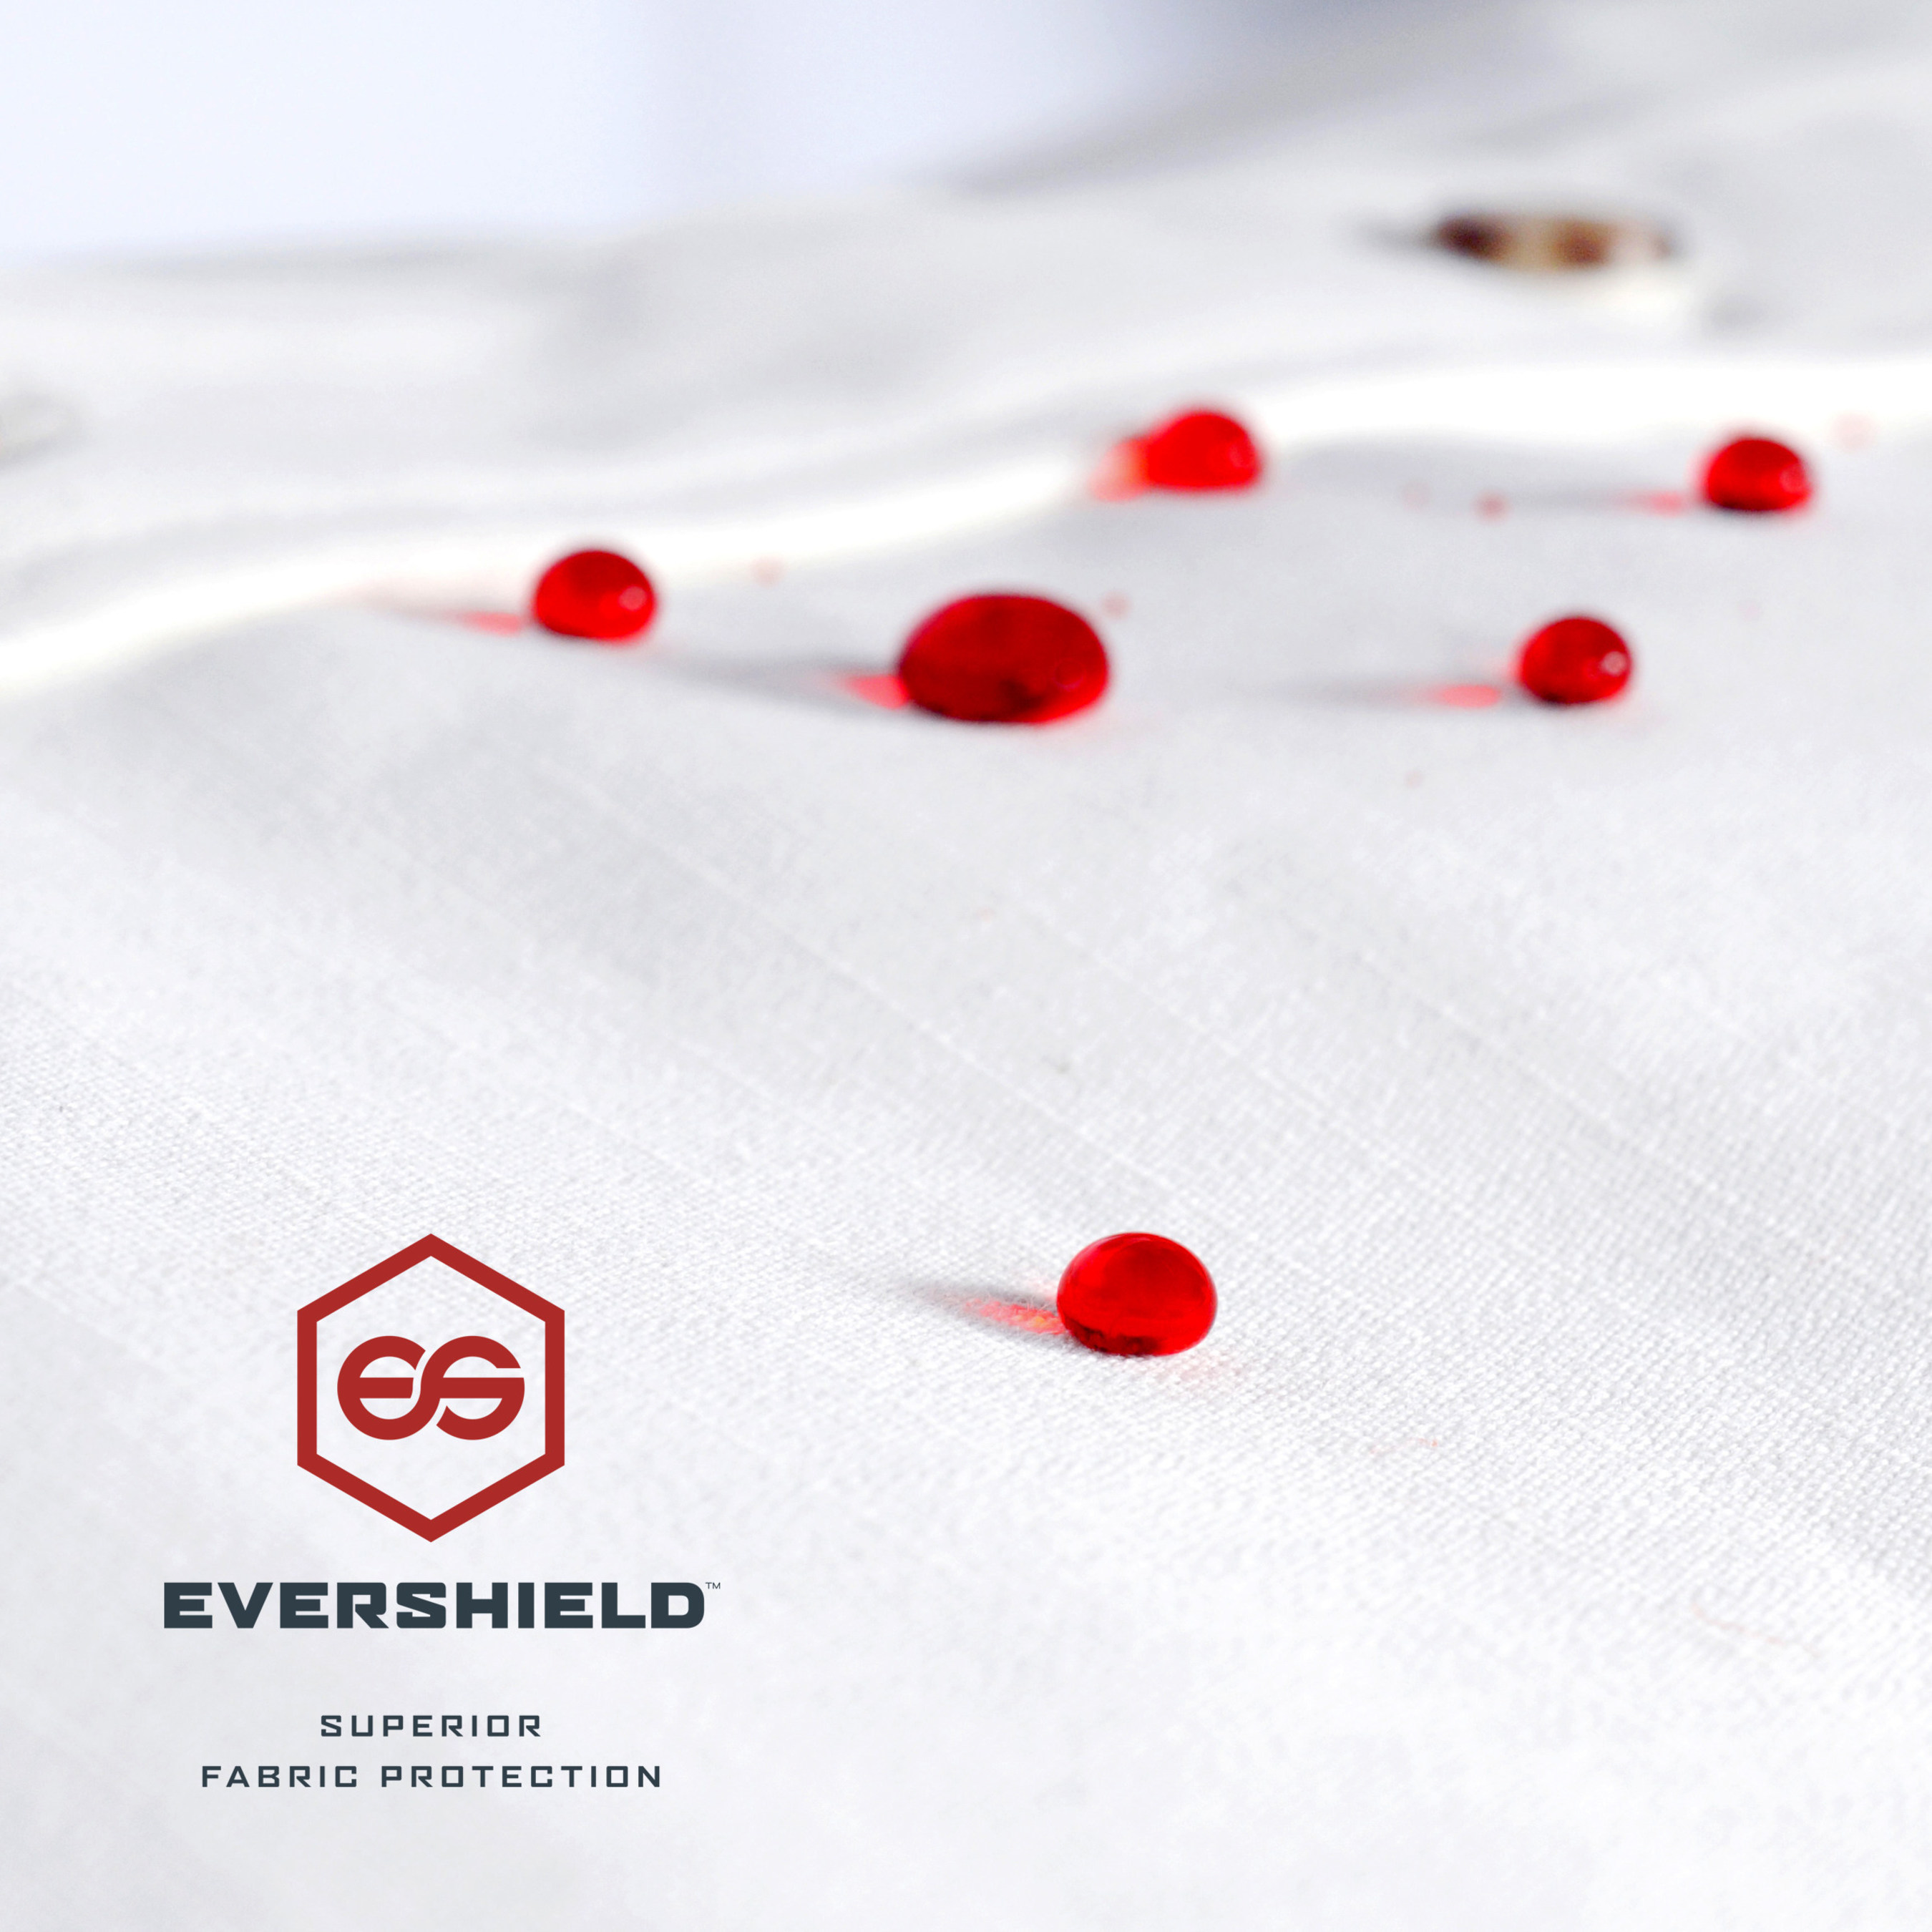 New superhydrophobic fabric protection gets selected for Material ConneXion library